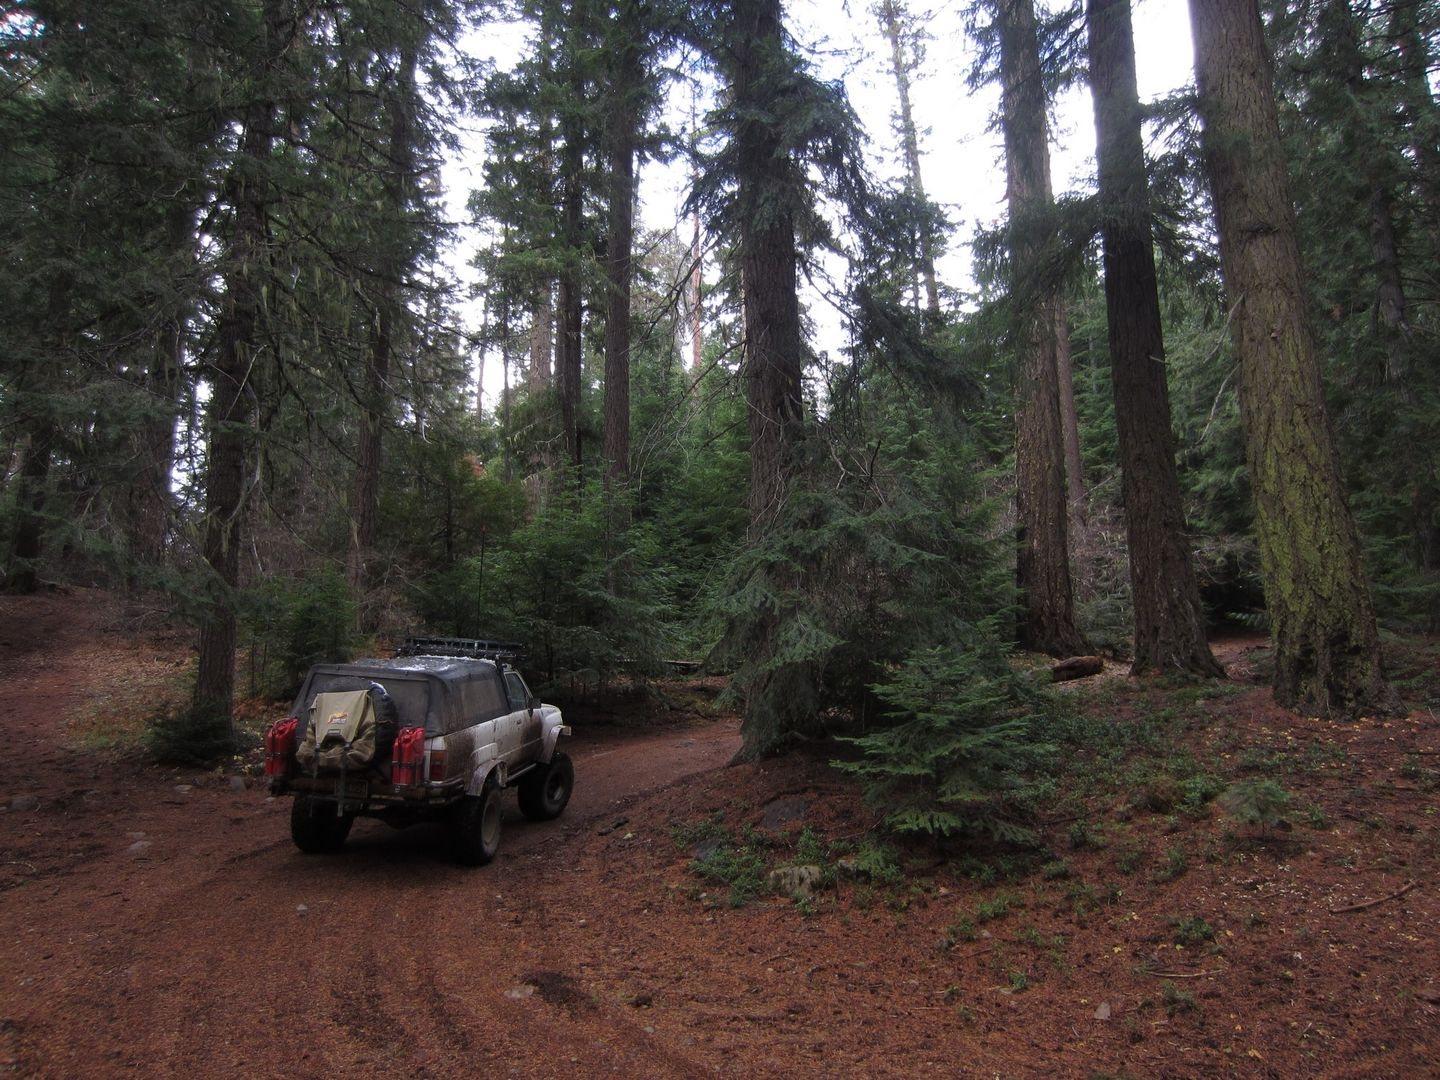 Barlow Trail - Waypoint 16: Go Right